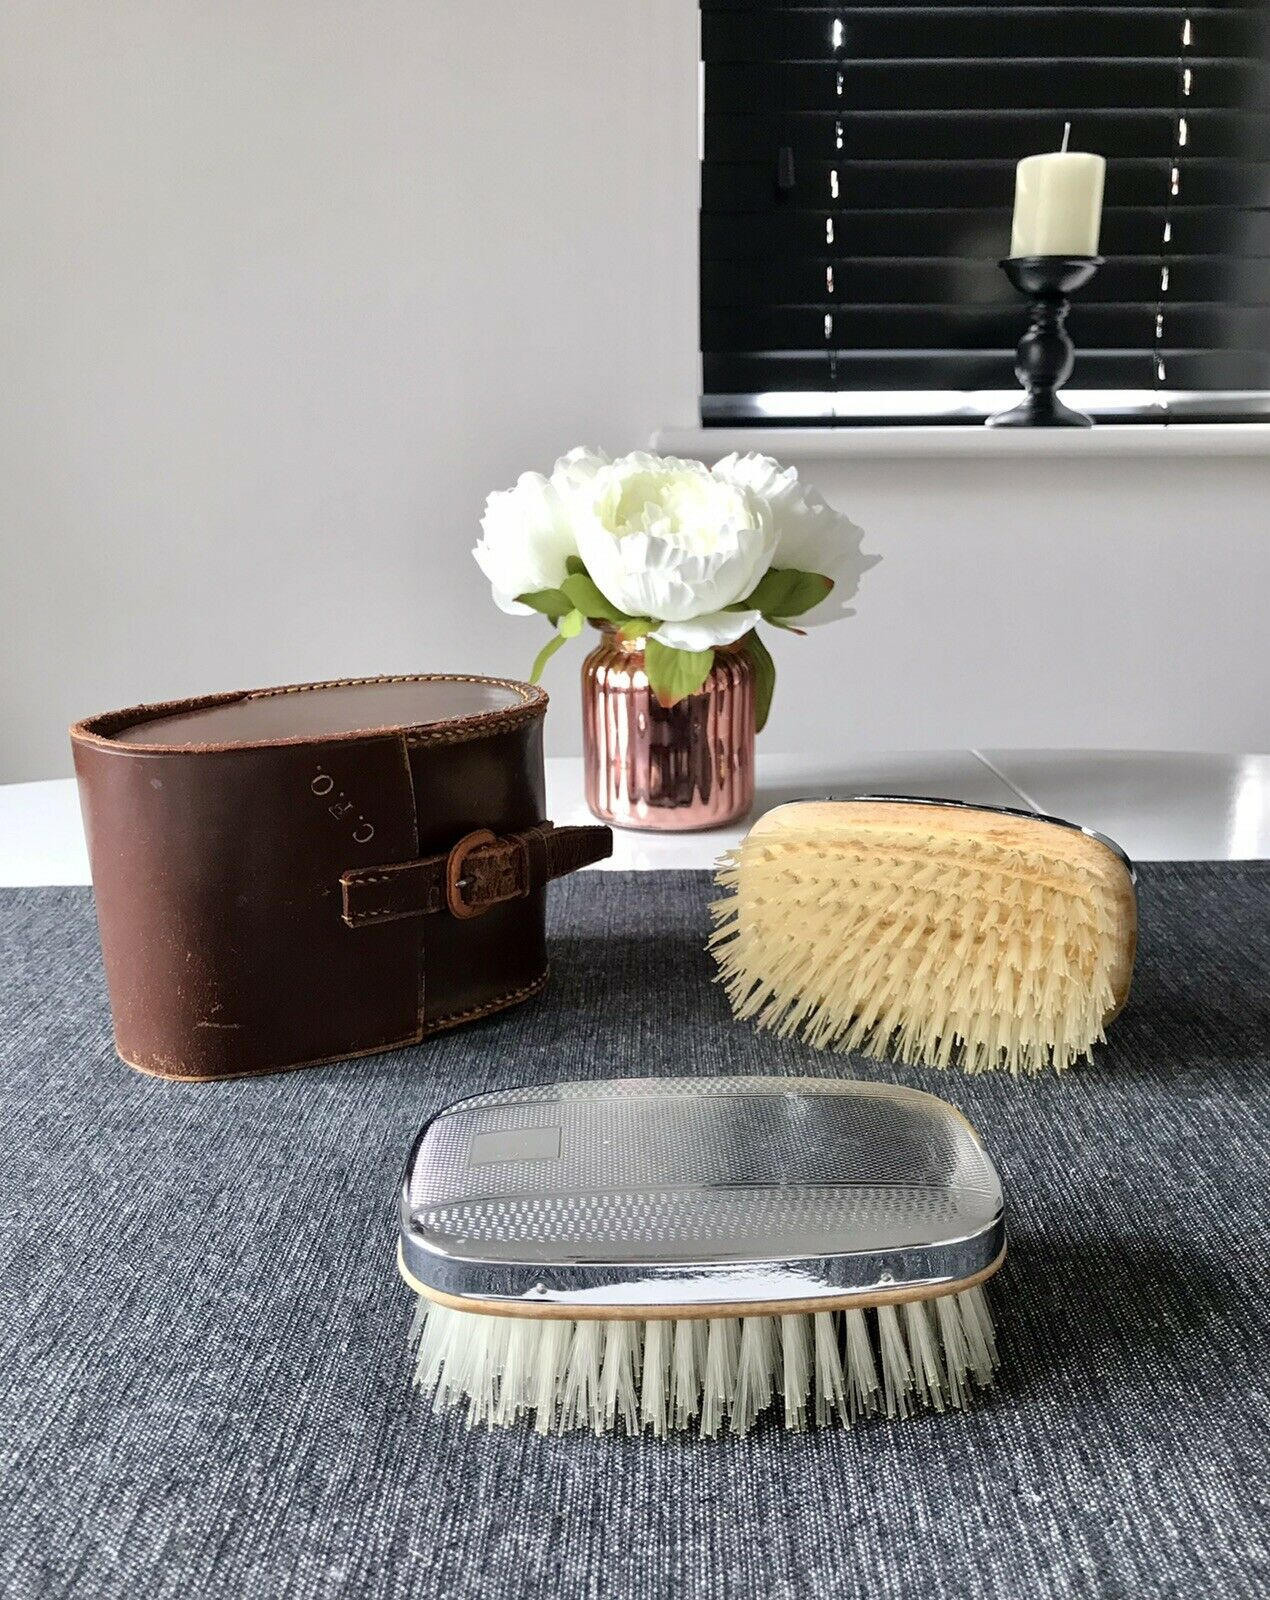 Vintage 1940s/50s Chromium Plated Clothes And Shoes Brushes With Leather Case